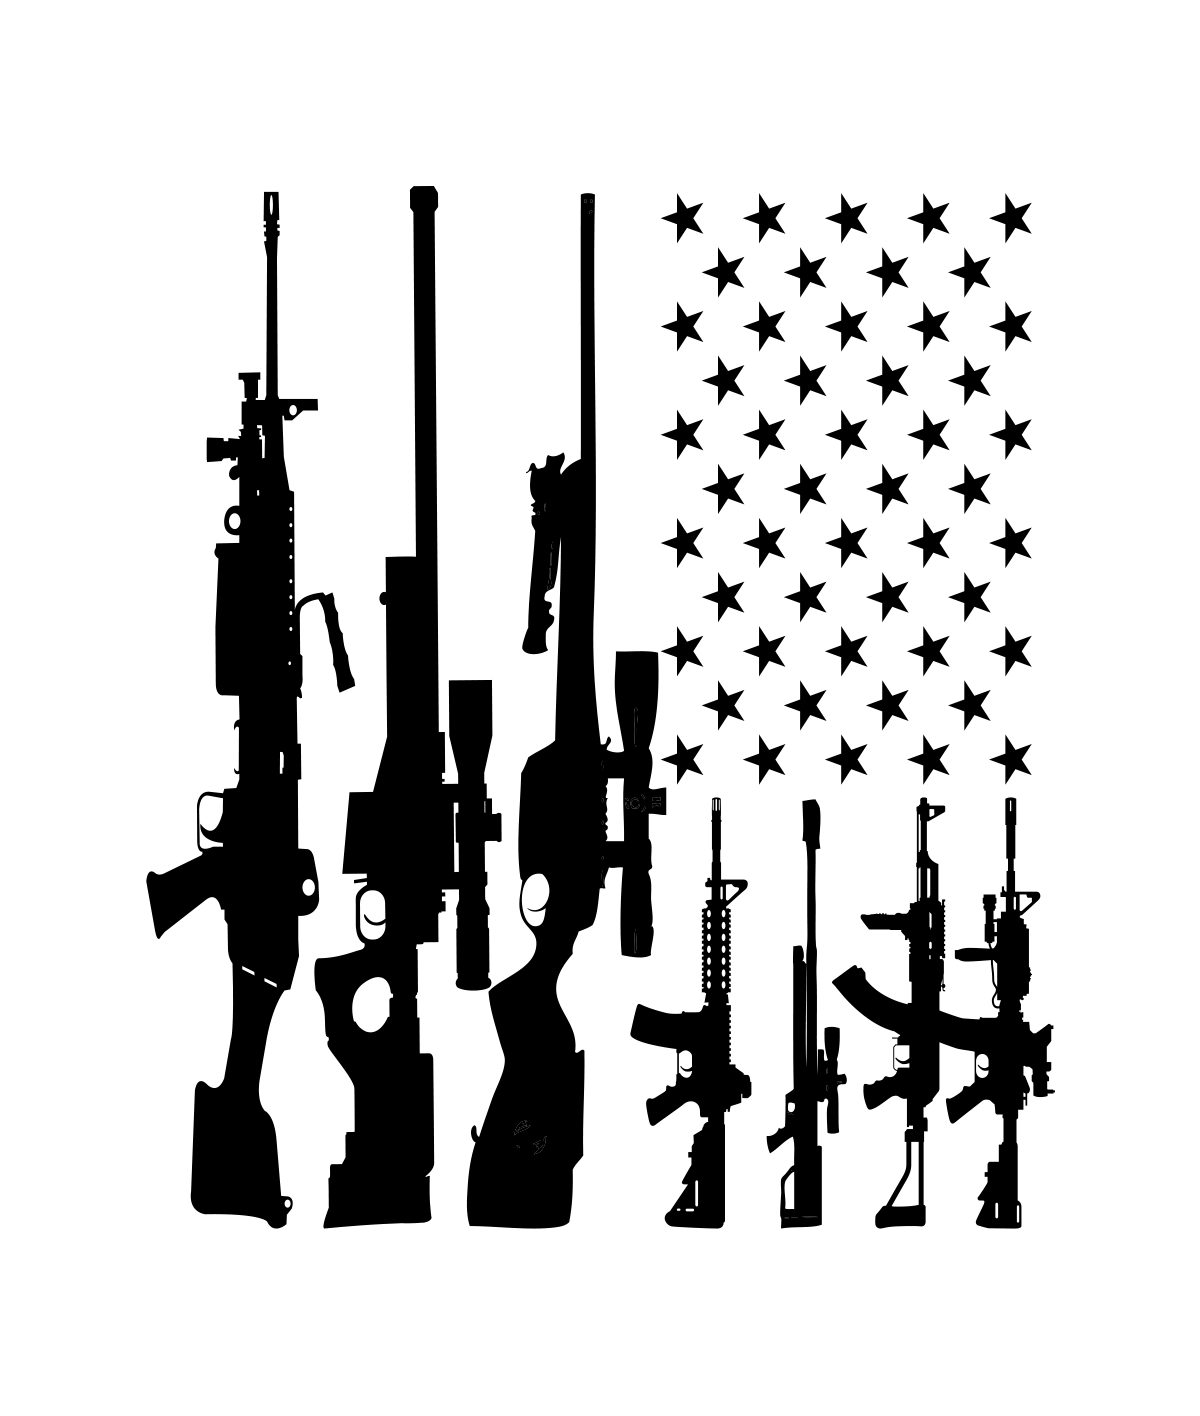 Gun Clipart Free Download On Webstockreview